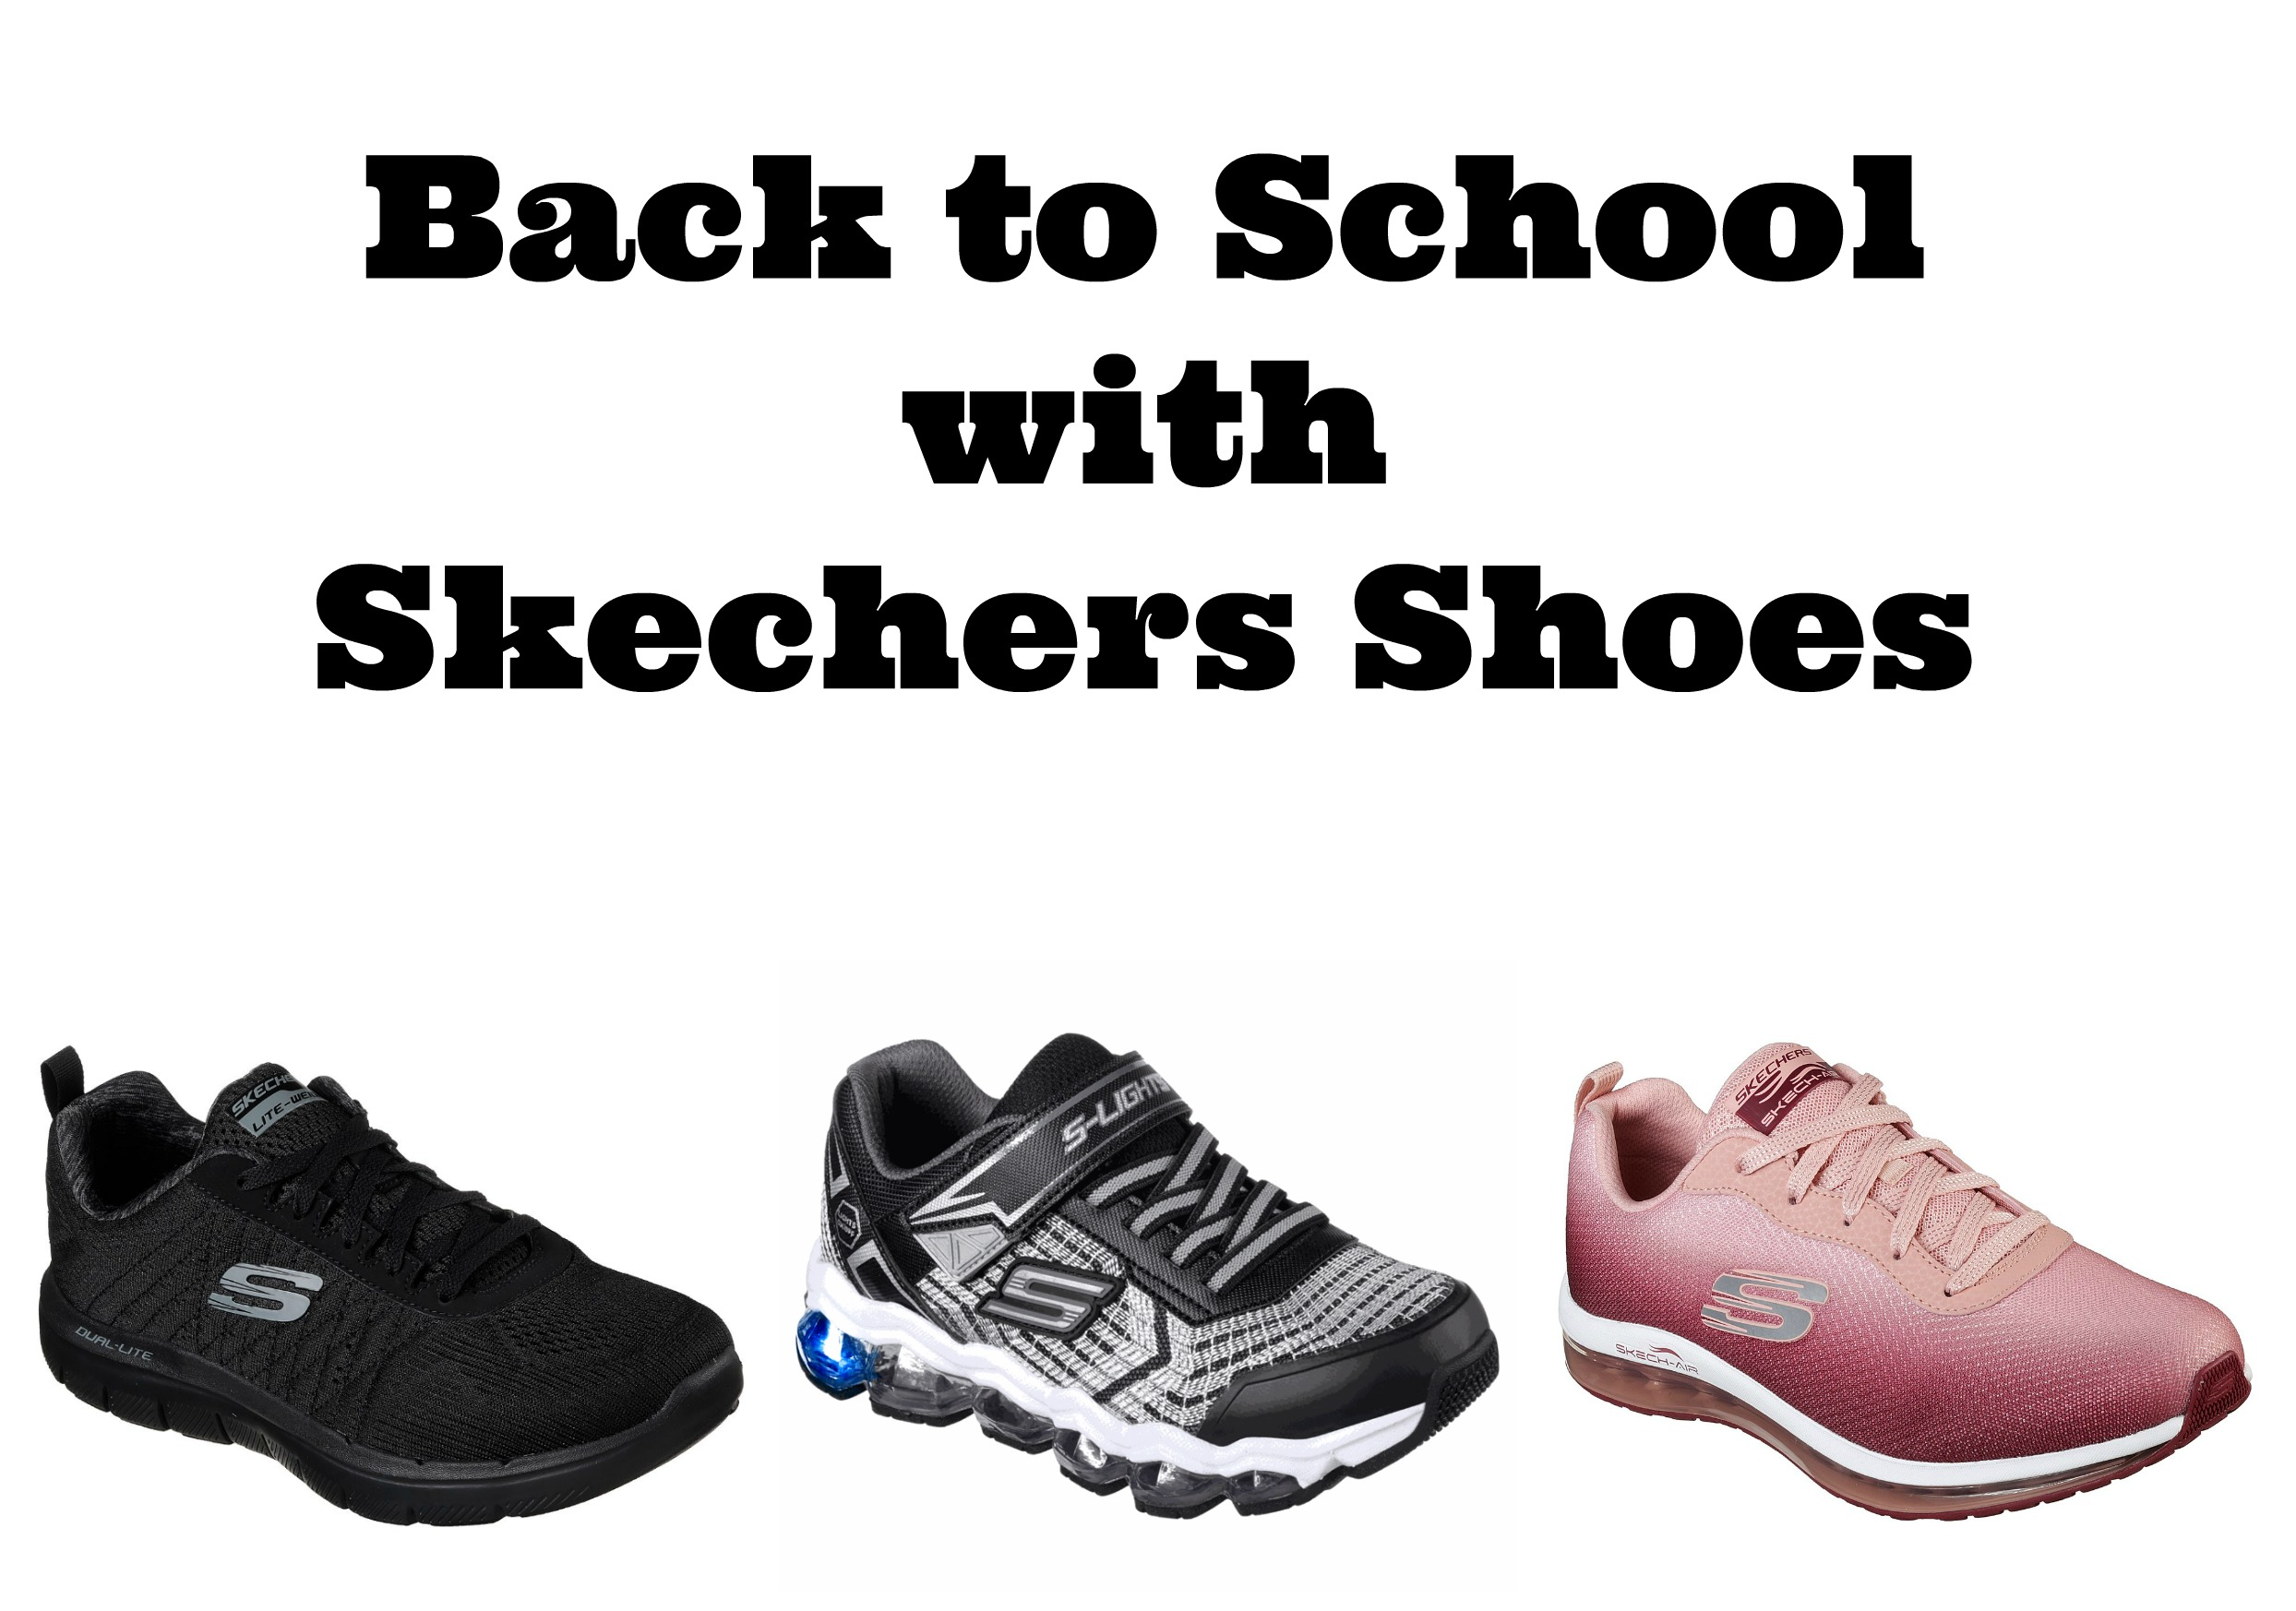 Back to School with Skechers Shoes